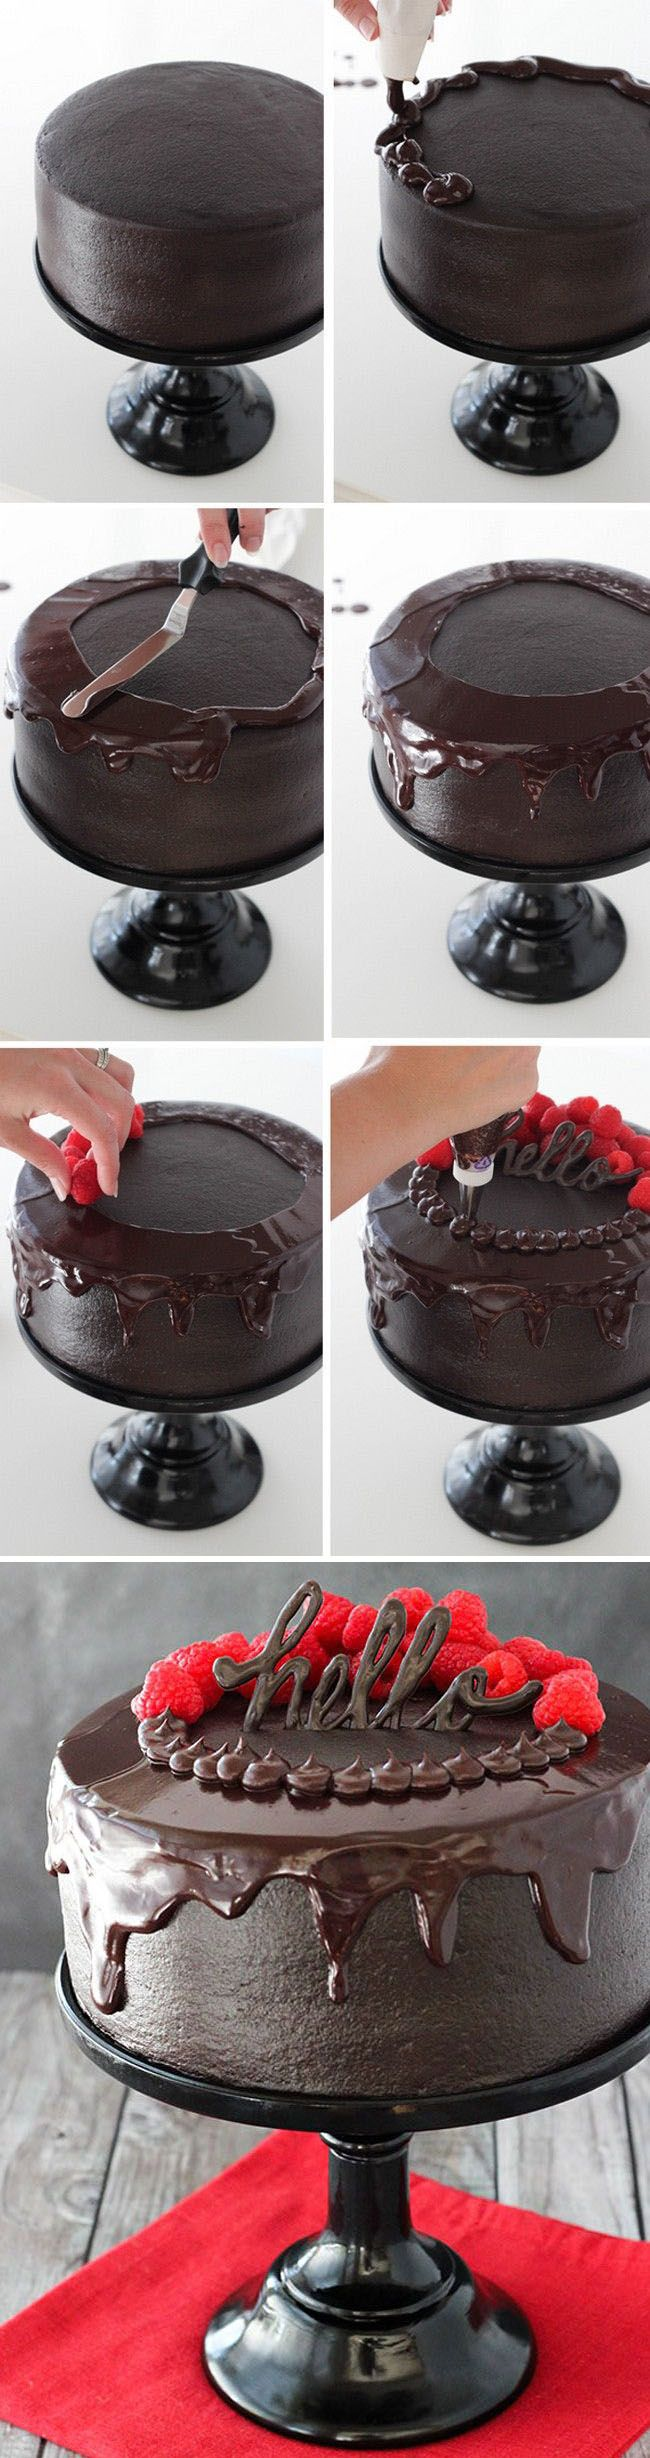 Red Wine Chocolate Cake Recipe / Decoration